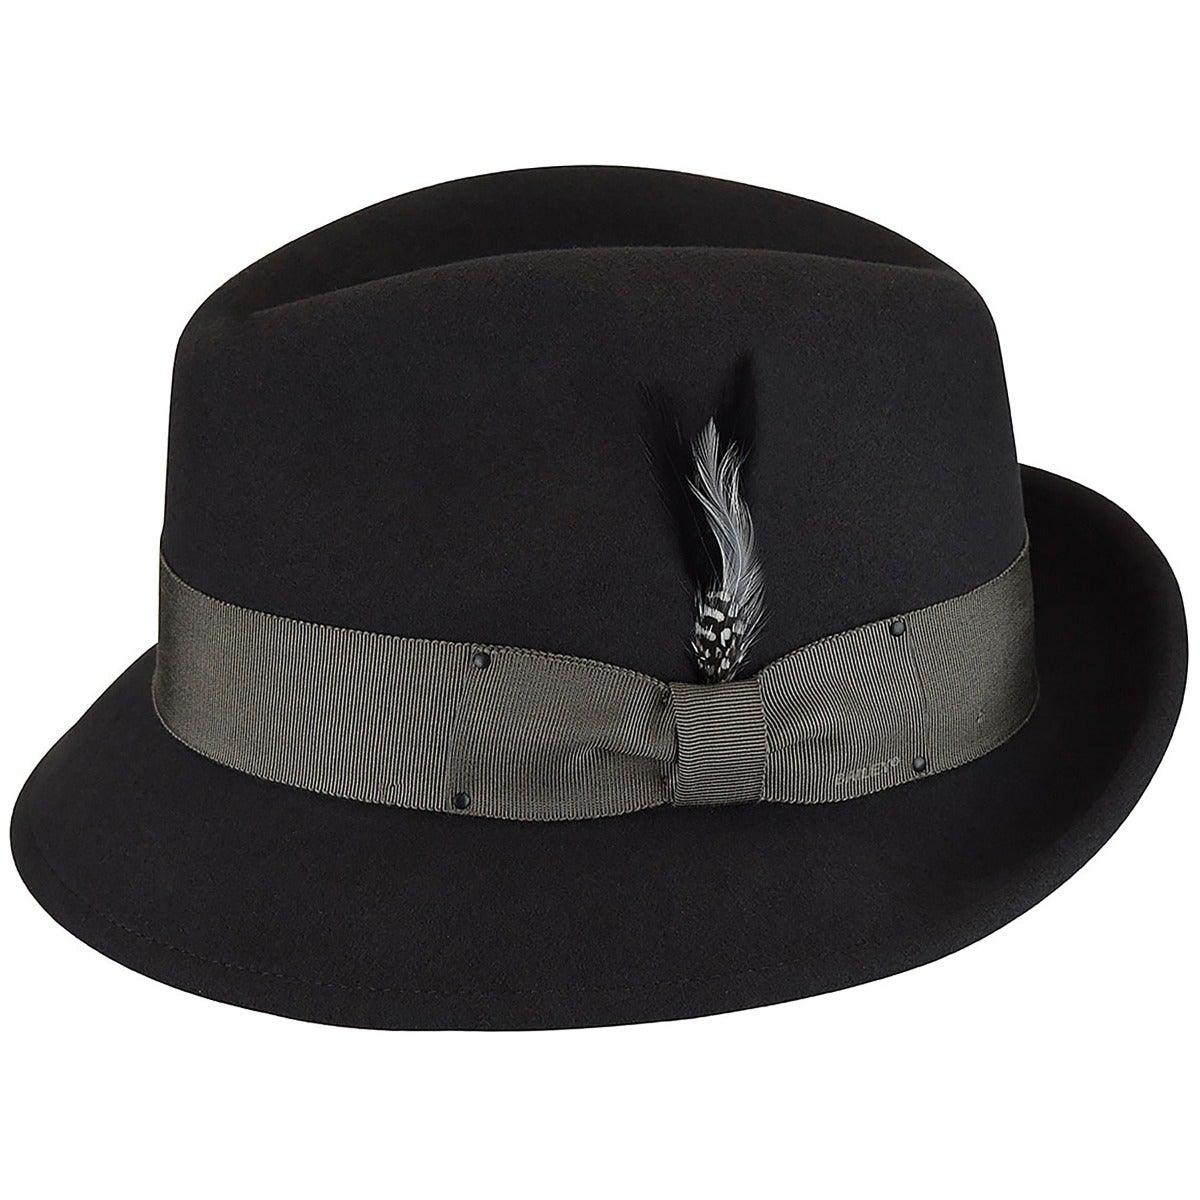 1940s Mens Hats | Fedora, Homburg, Pork Pie Hats Tino LiteFelt Fedora $100.00 AT vintagedancer.com